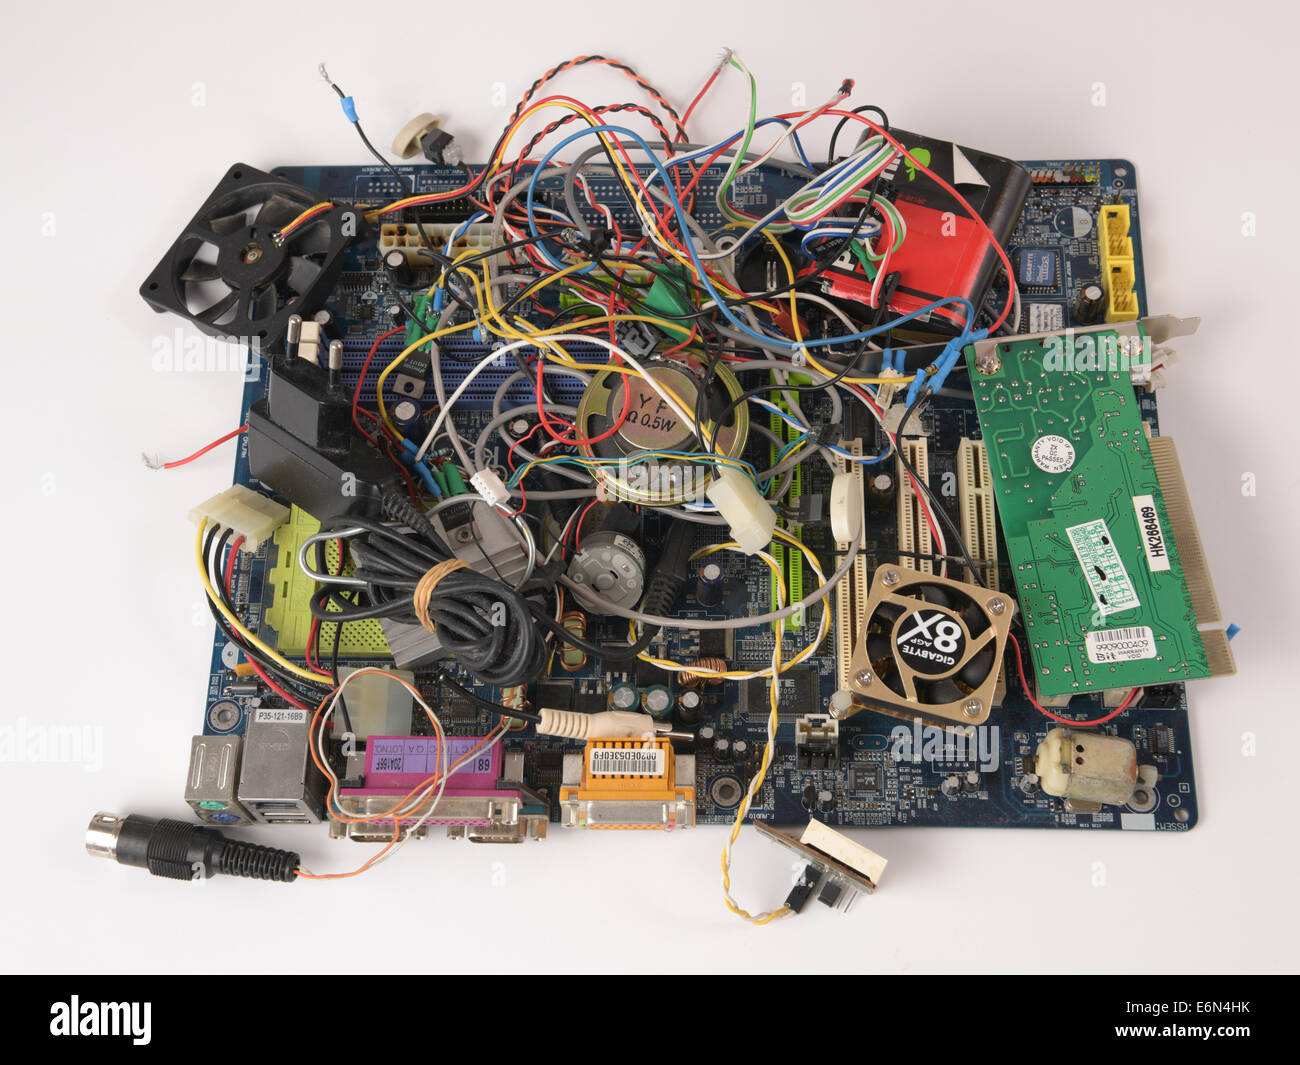 Pile Of Electronic Waste Computer Motherboard Wires